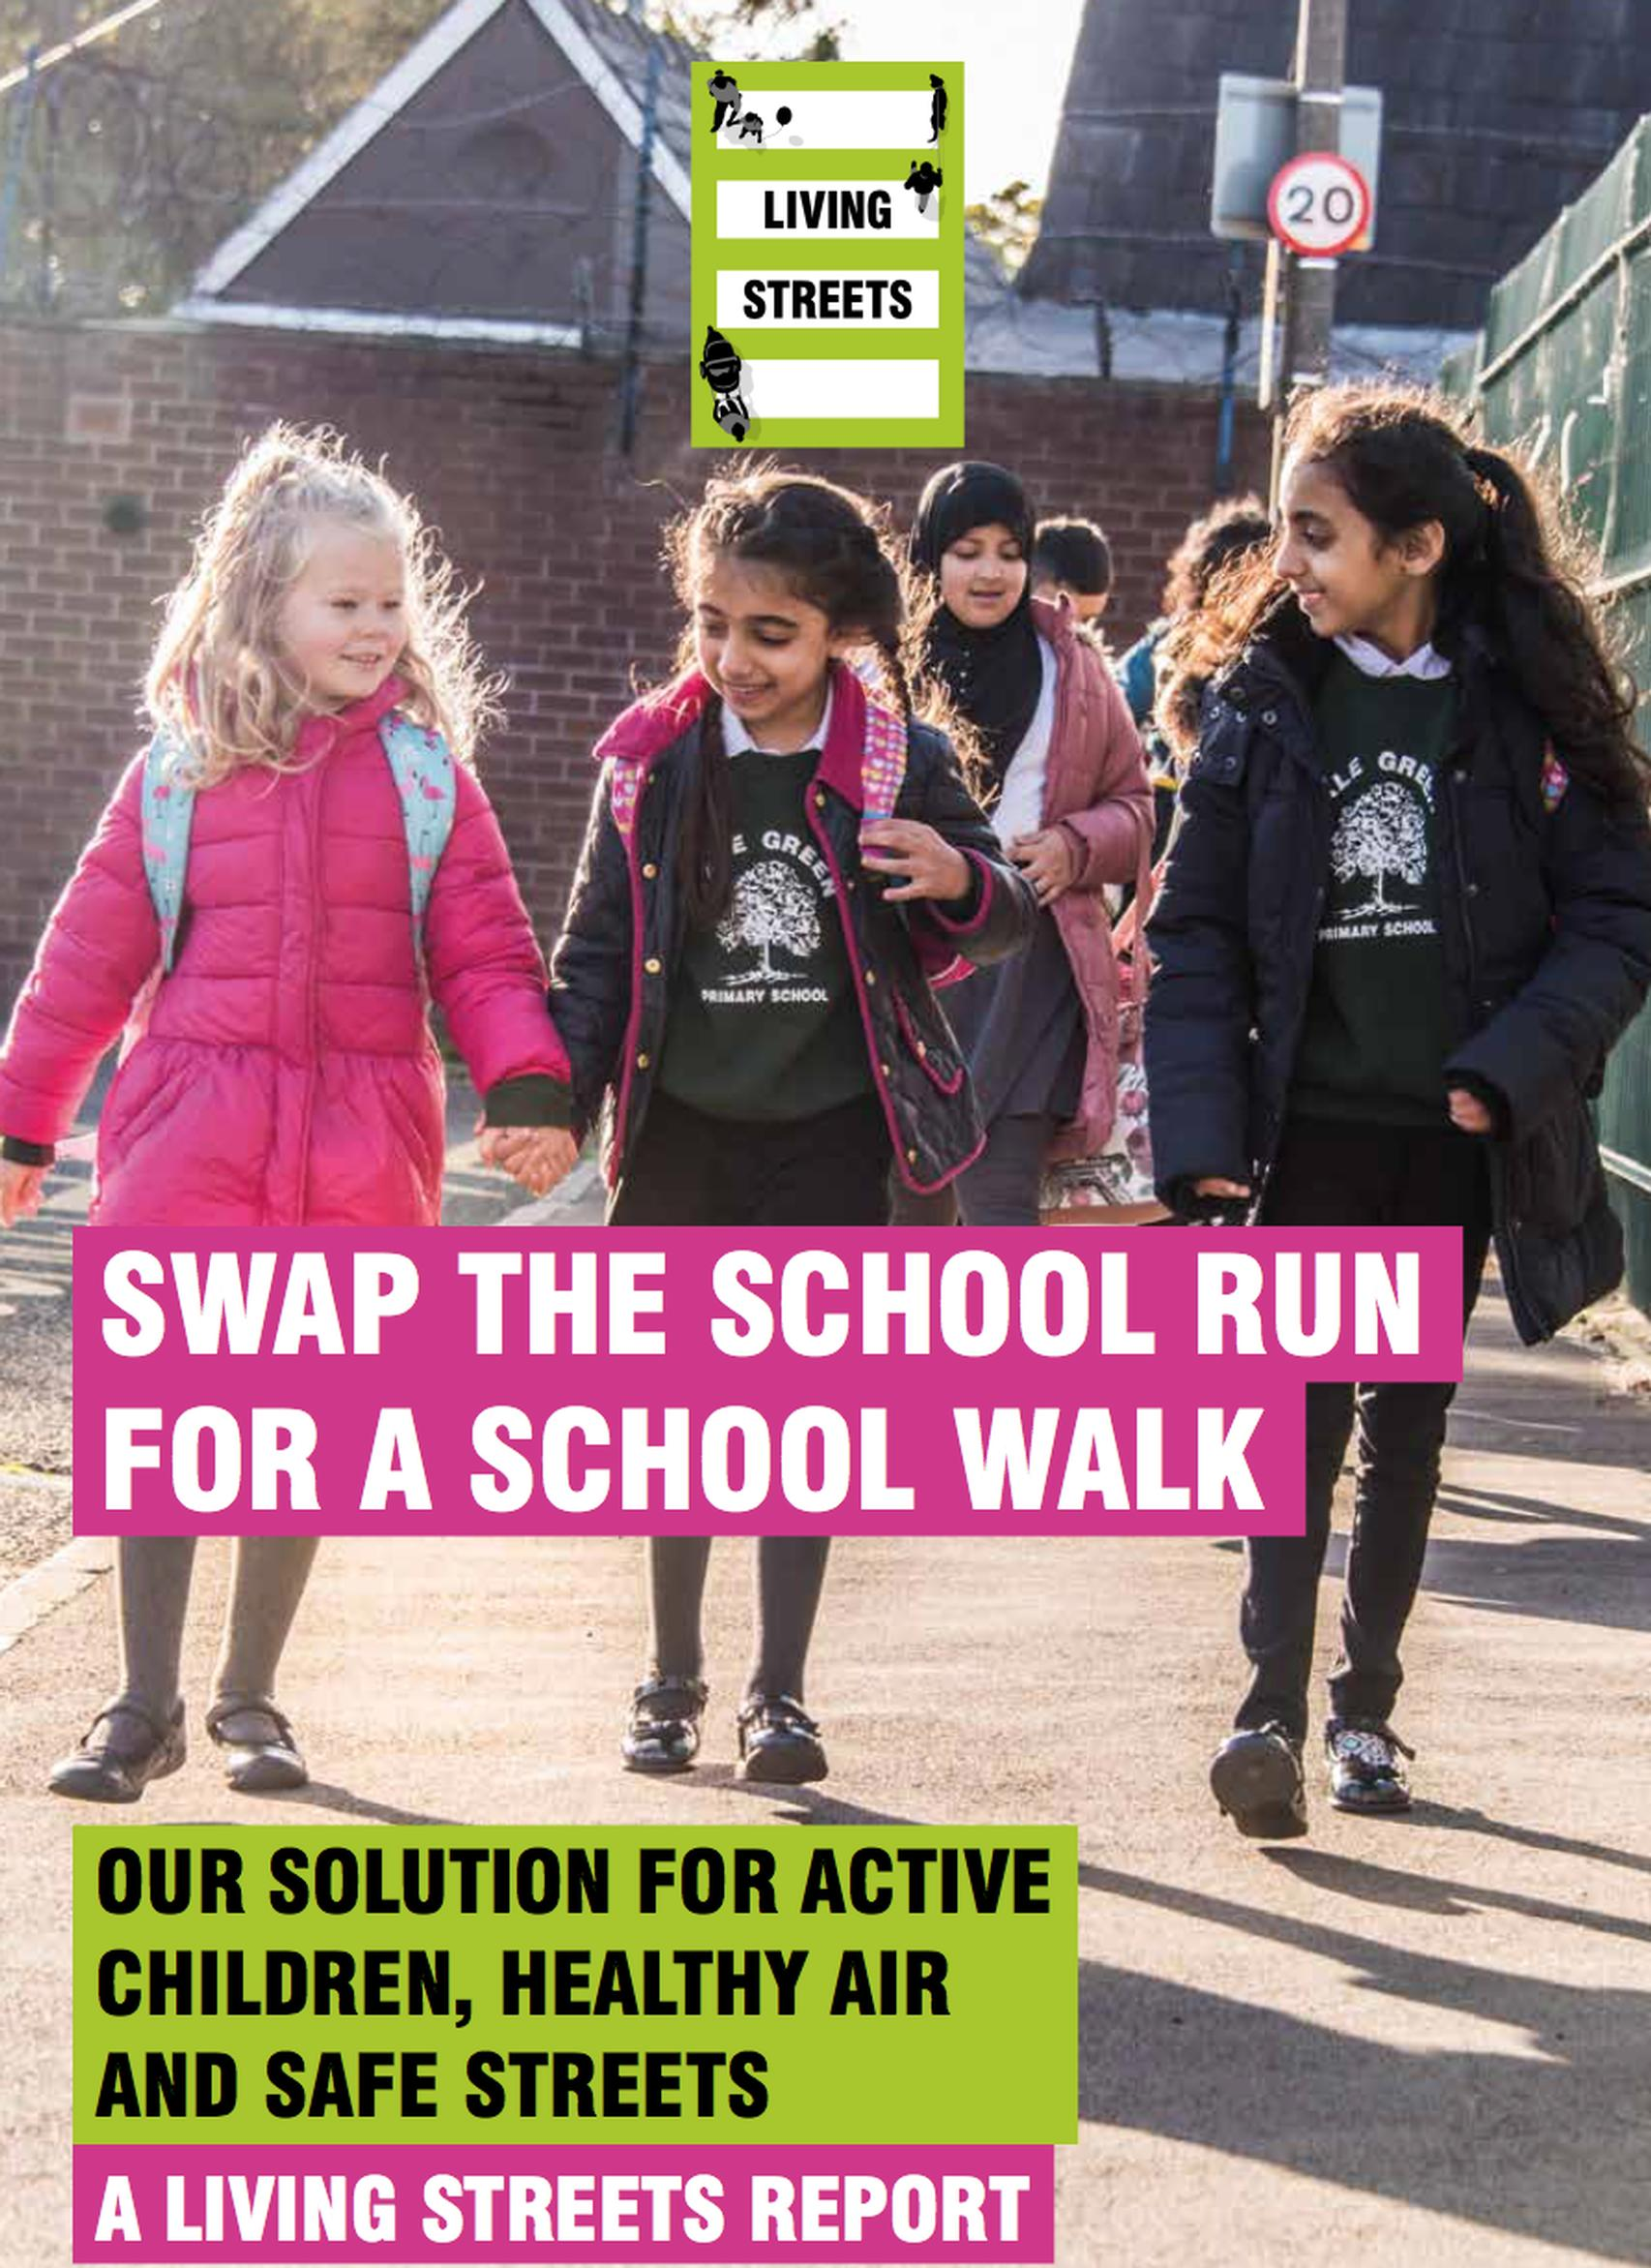 Swap the school run for a school walk,